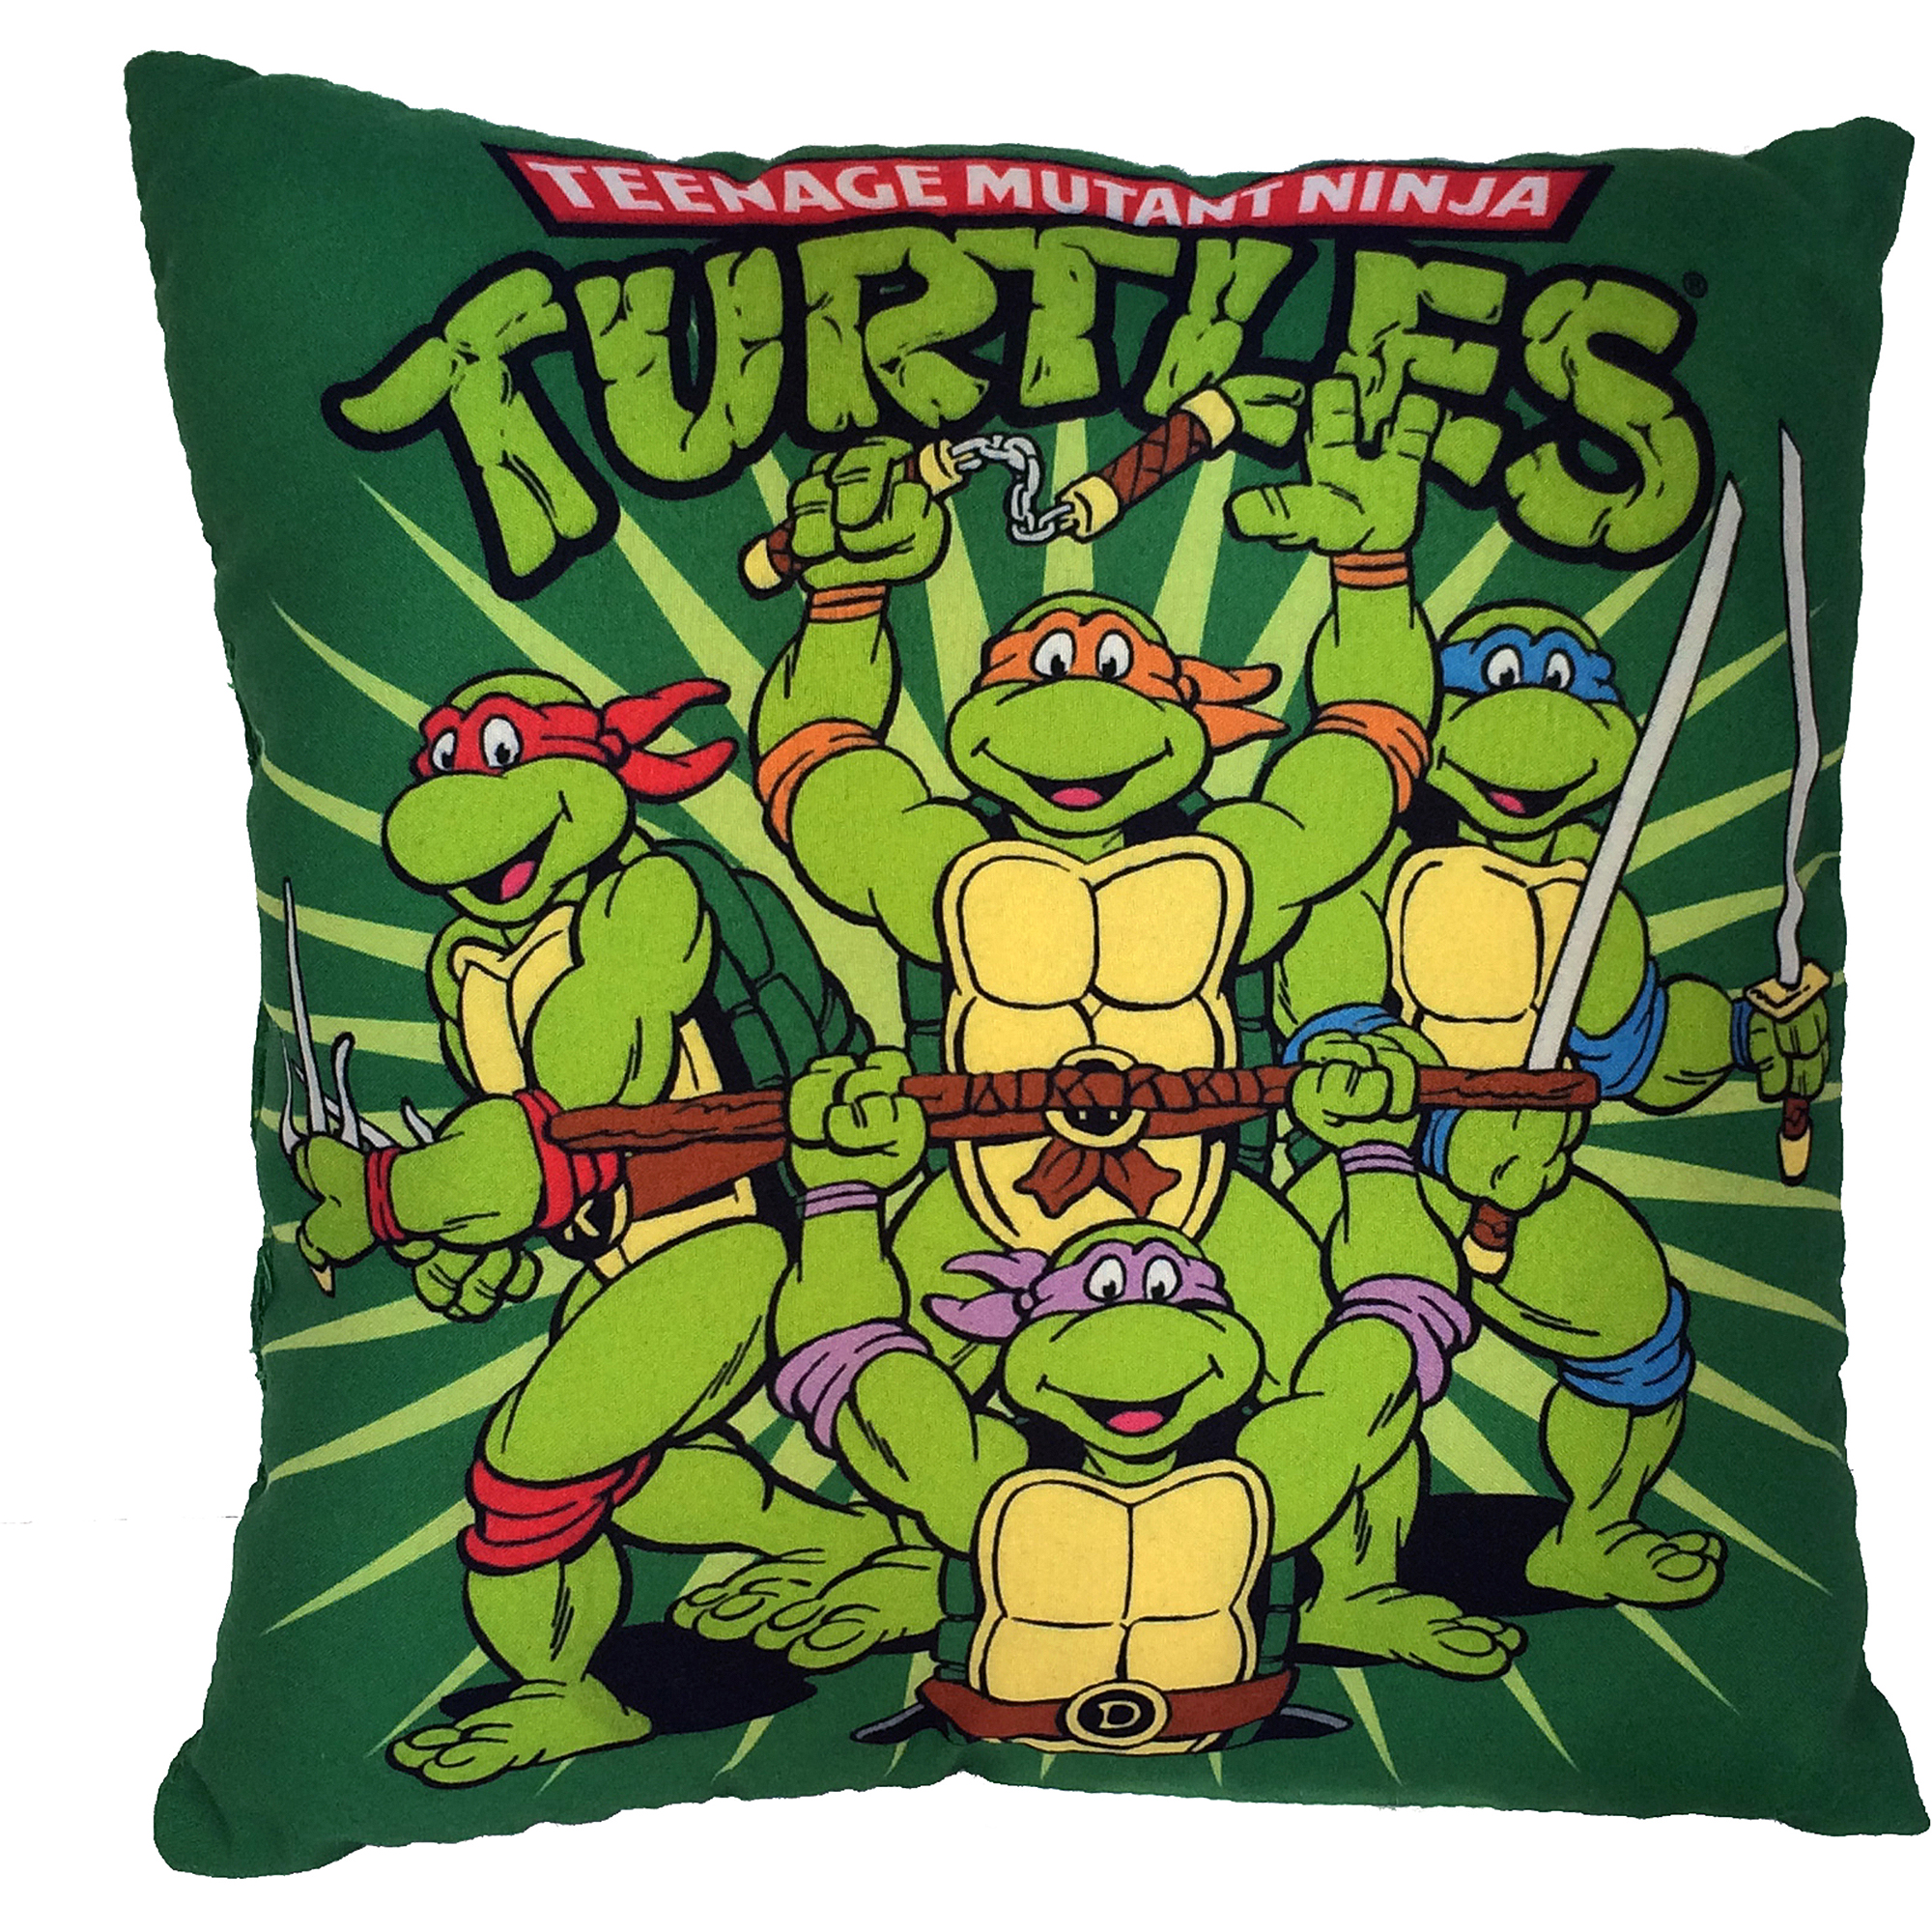 TMNT Teenage Mutant Ninja Turtles Decorative Pillow